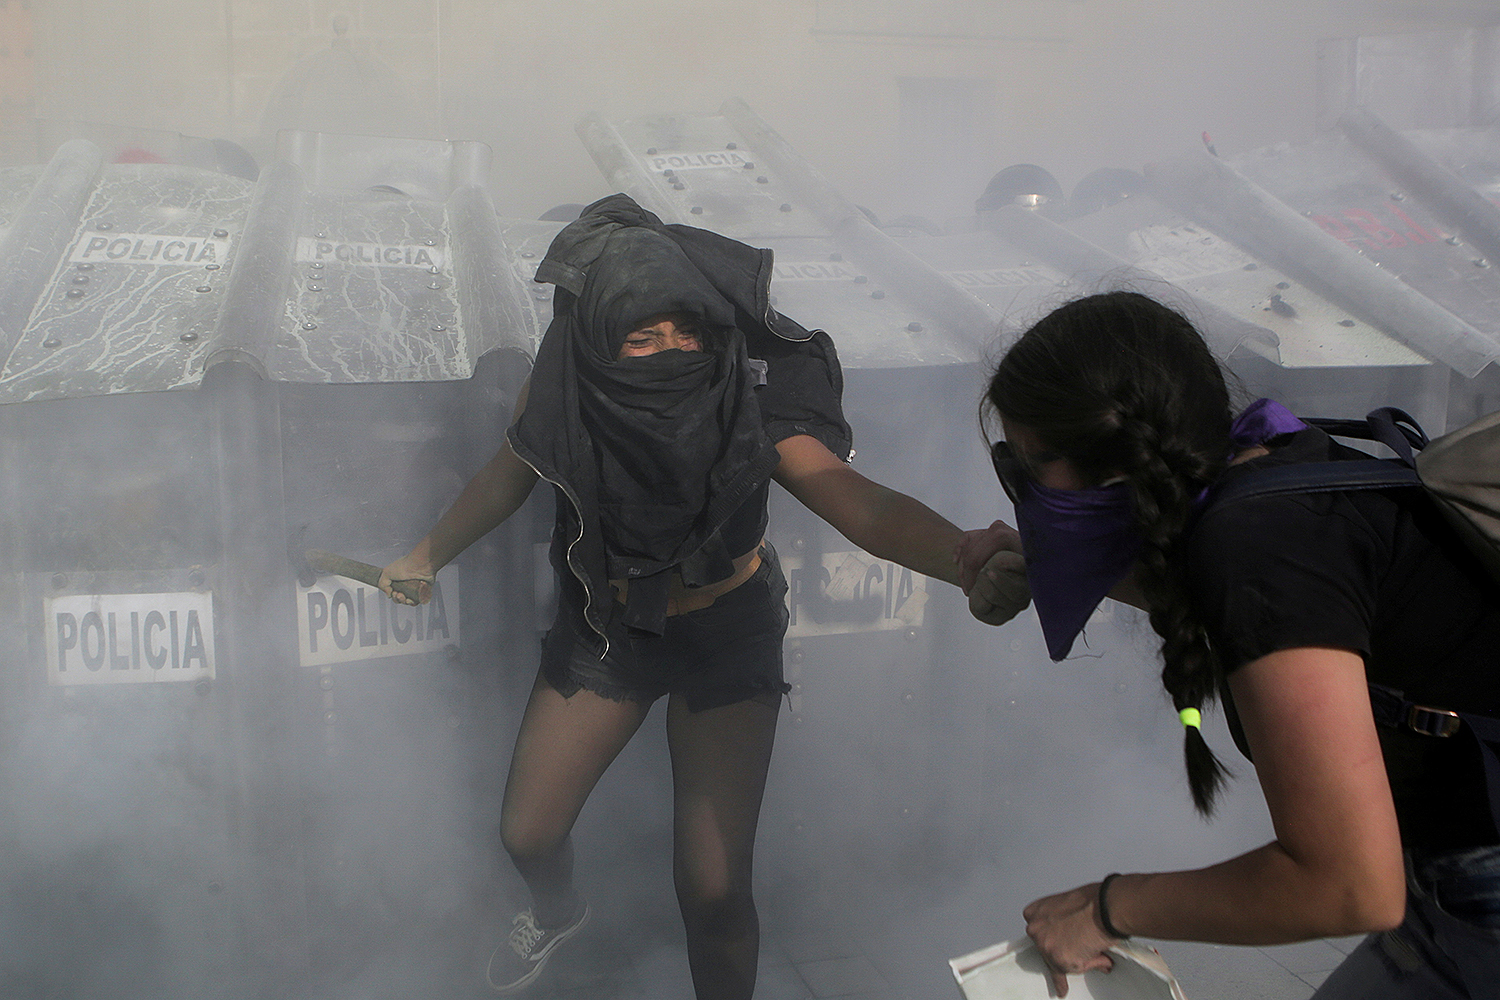 Women clash with police officers behind riot shields during a protest in support of Victoria Salazar, a Salvadoran woman who died after a Mexican police officer was seen in a video kneeling on her back, in Mexico City on April 2. Raquel Cunha/Reuters